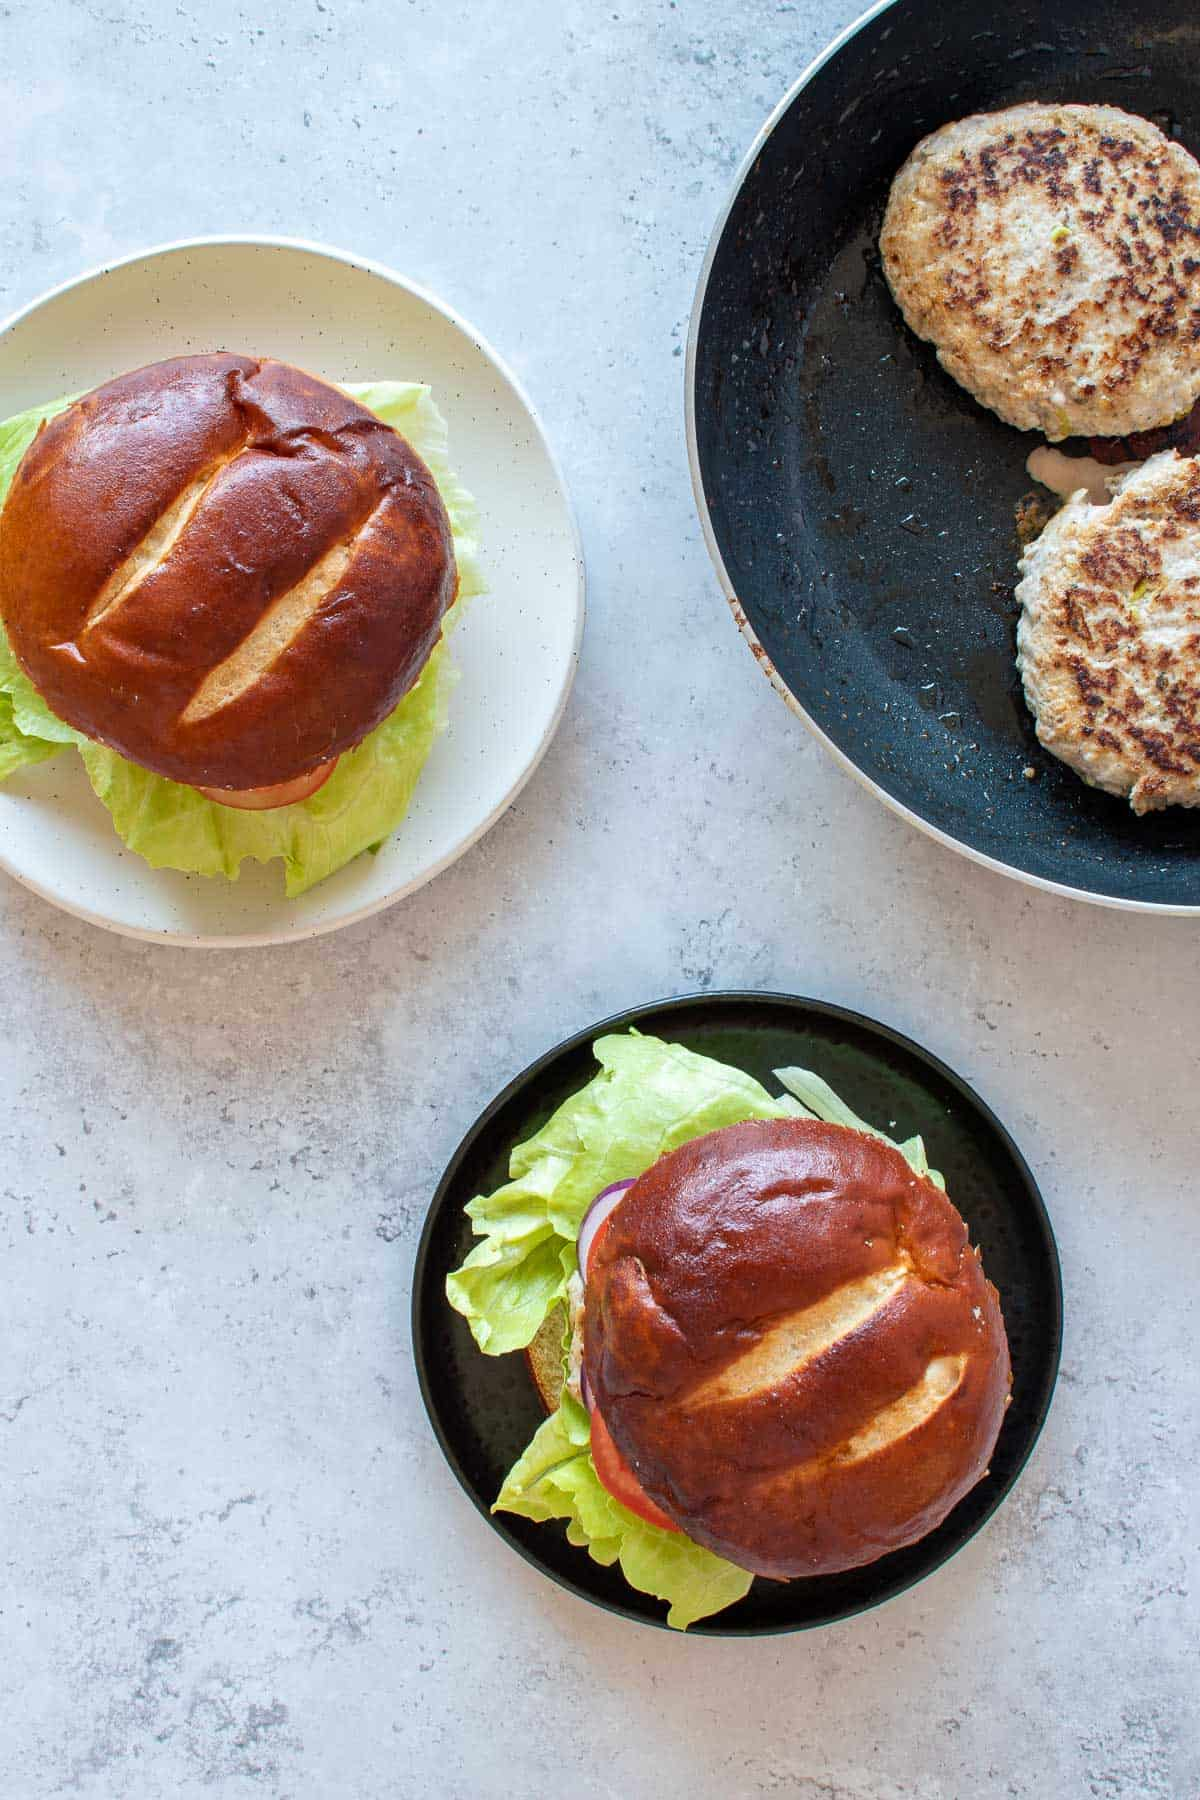 Two plated pork and apple burgers, with more burger patties in a frying pan on the side.